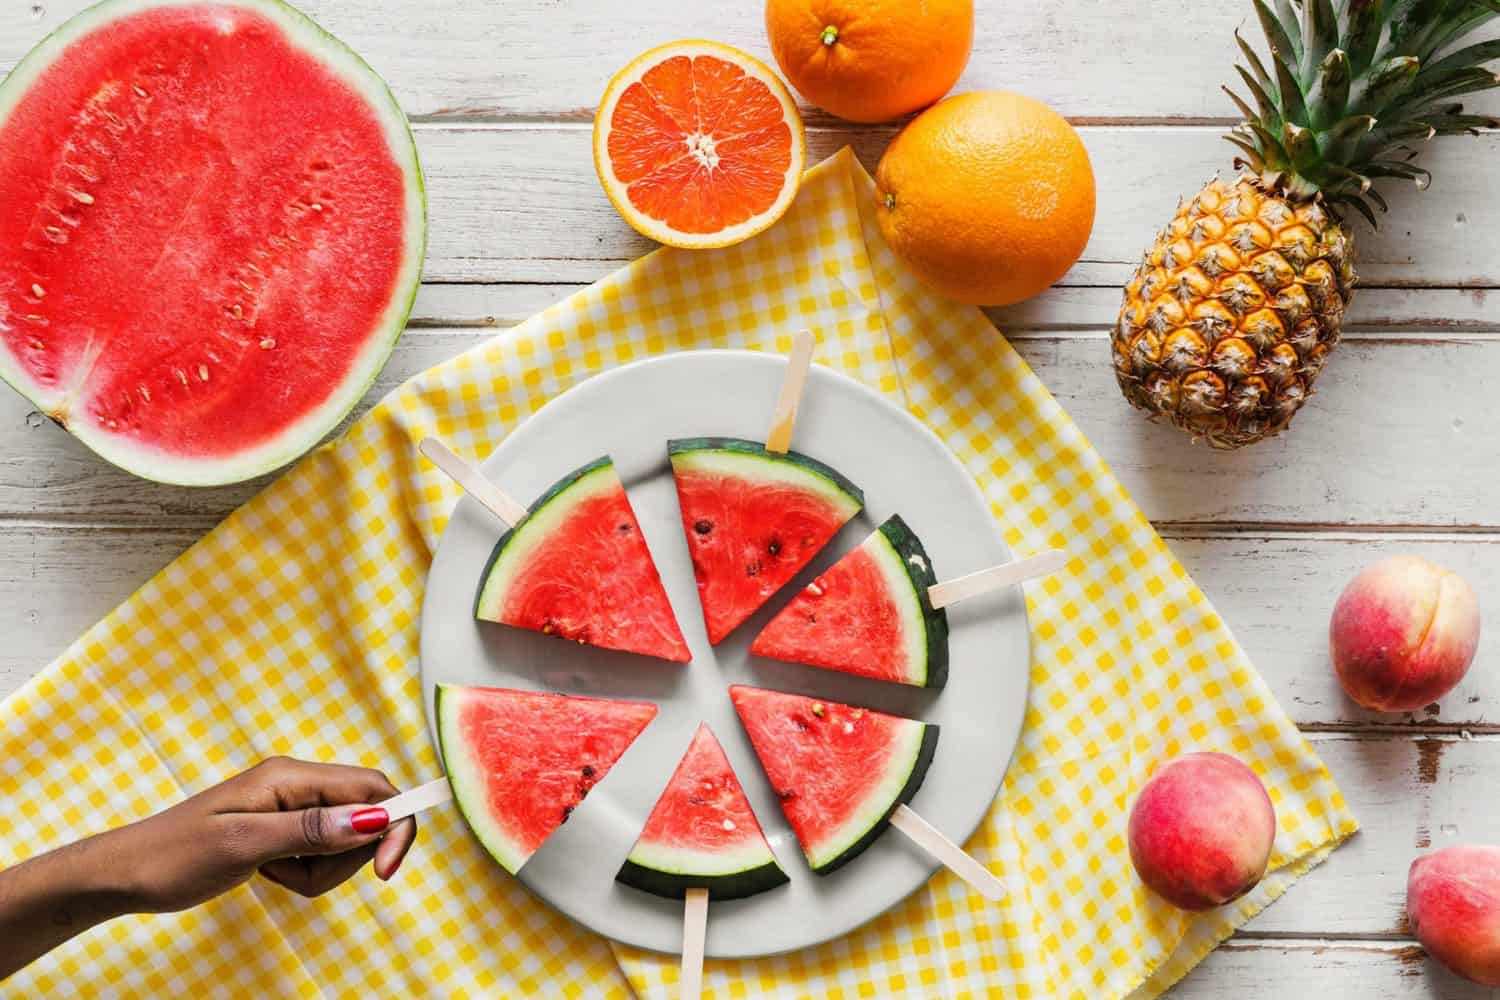 With heatwaves scorching South Africa, it's easy to lose body fluids. So stay hydrated with these 10 water-rich fruits and veggies.